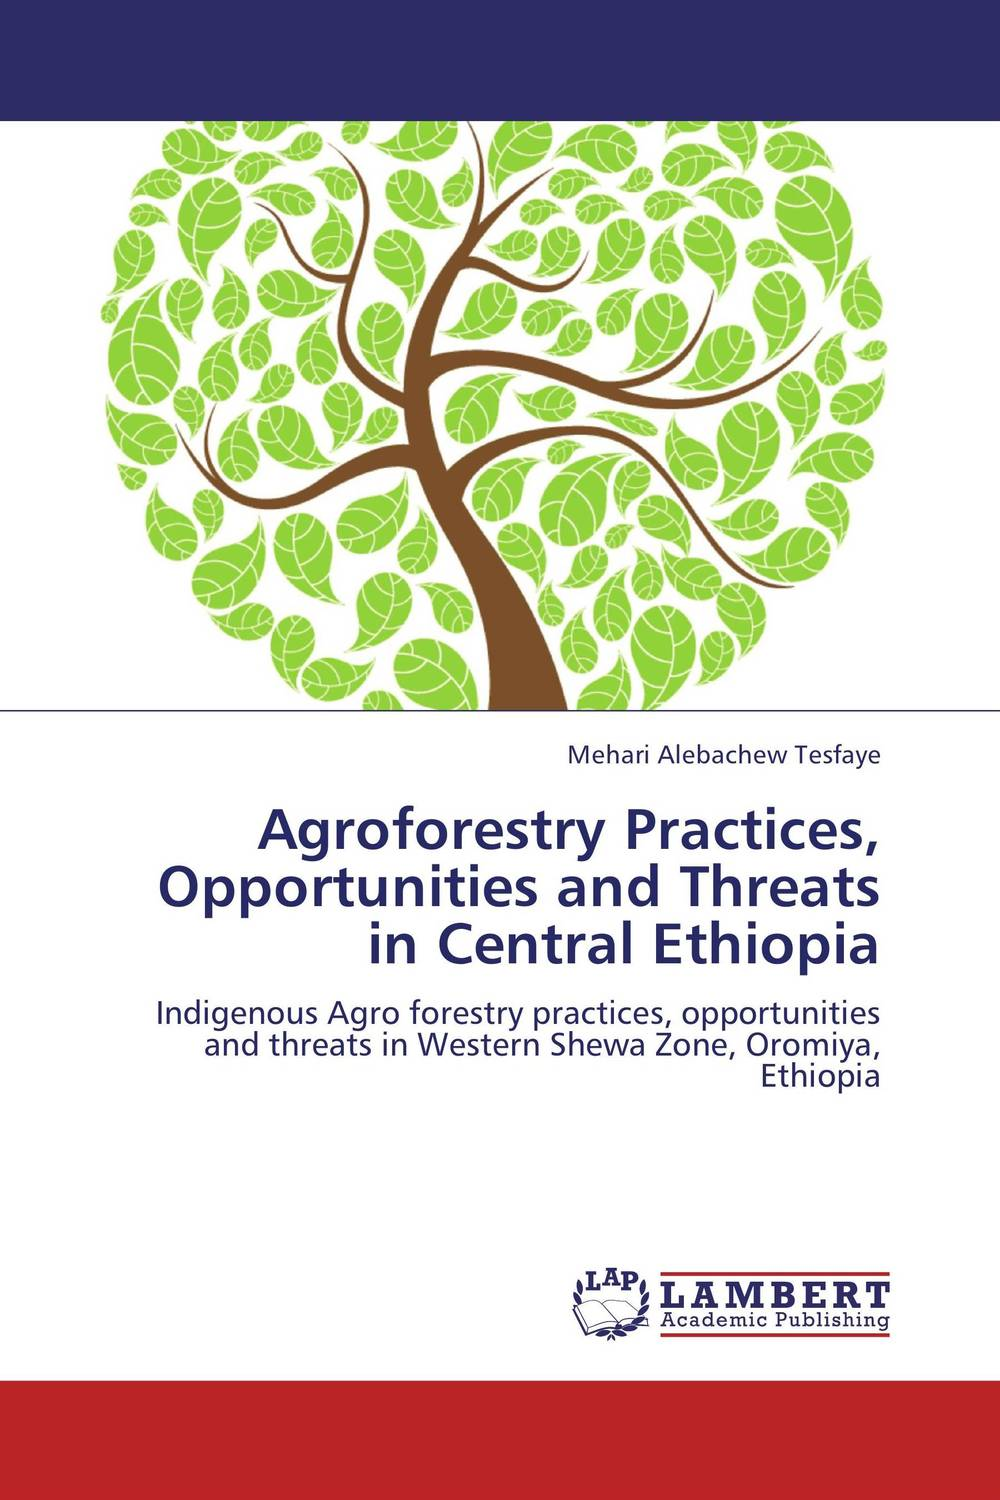 Agroforestry Practices, Opportunities and Threats in Central Ethiopia role of women in agroforestry practices management